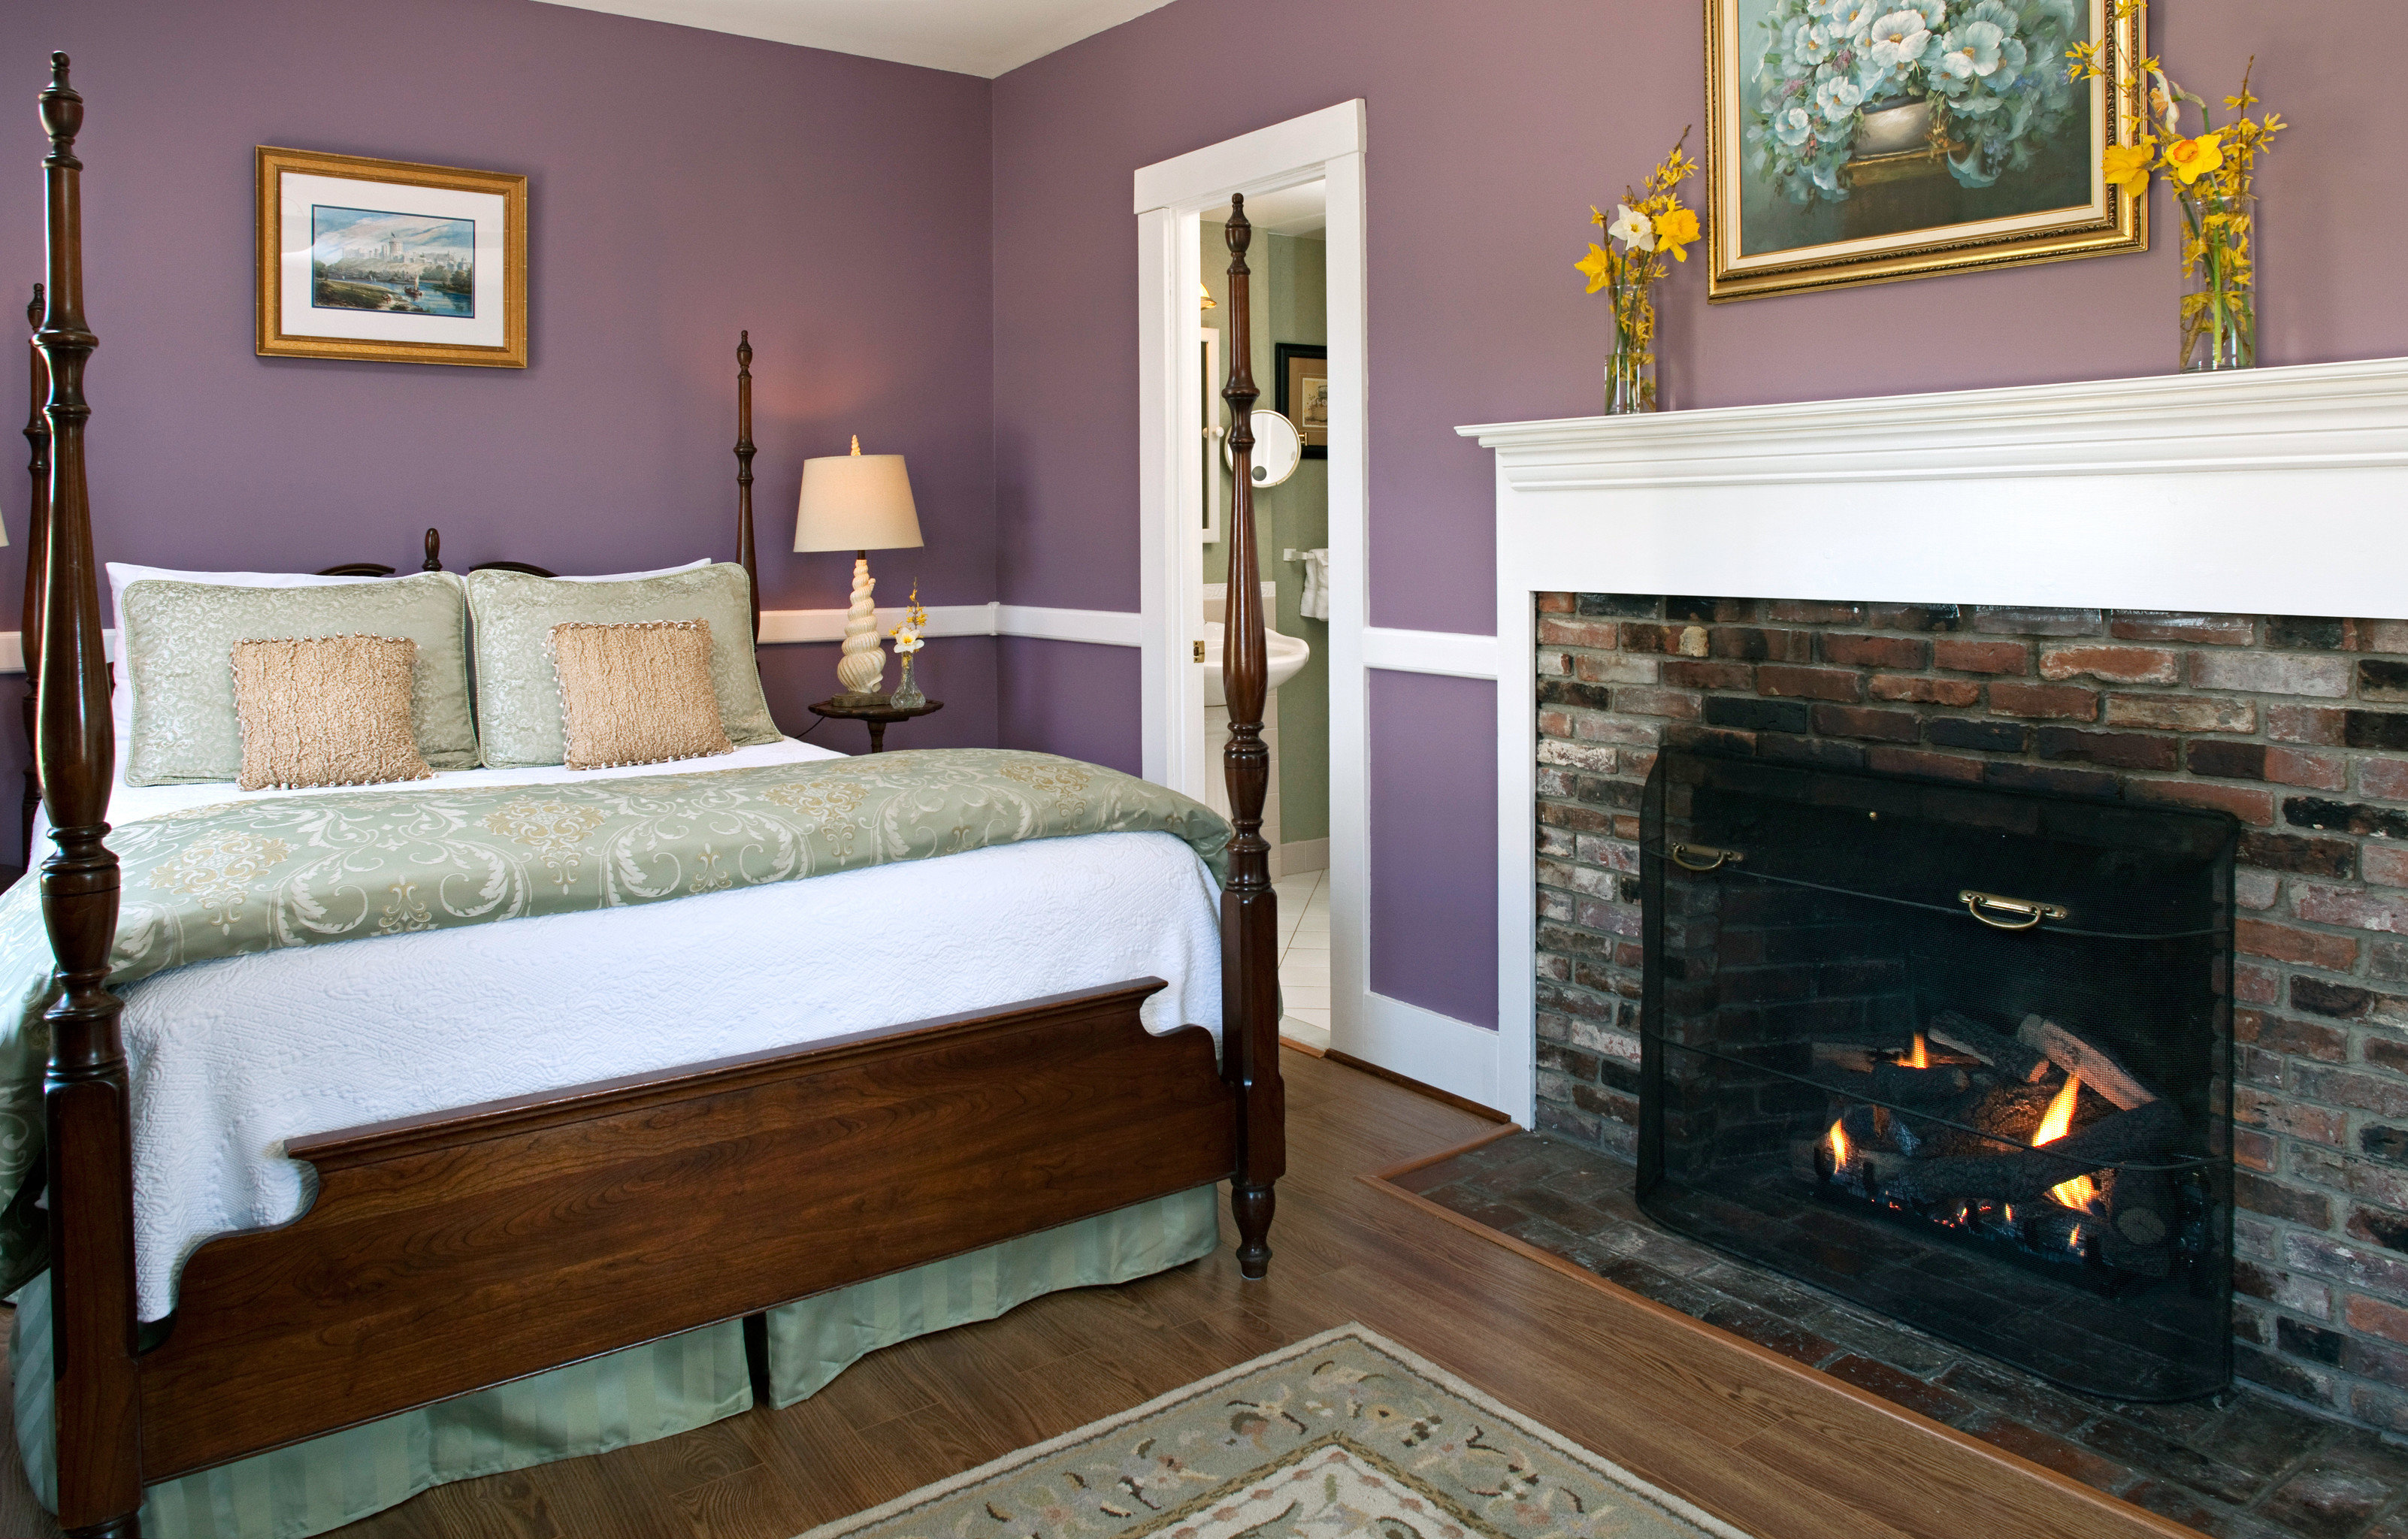 B&B Bedroom Country Fireplace Historic property cottage home living room hardwood stone